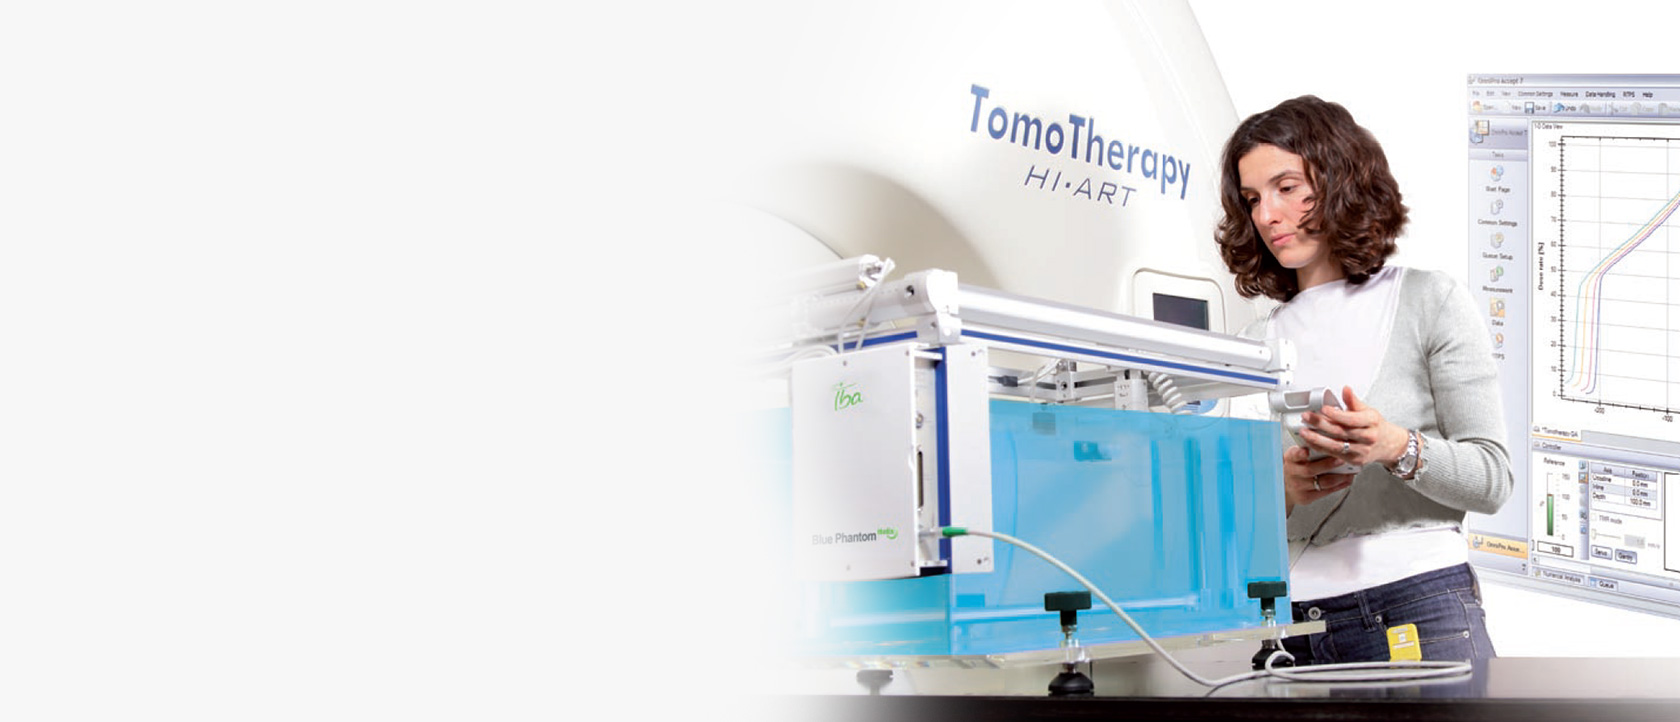 IBA Dosimetry Solutions for Tomotherapy